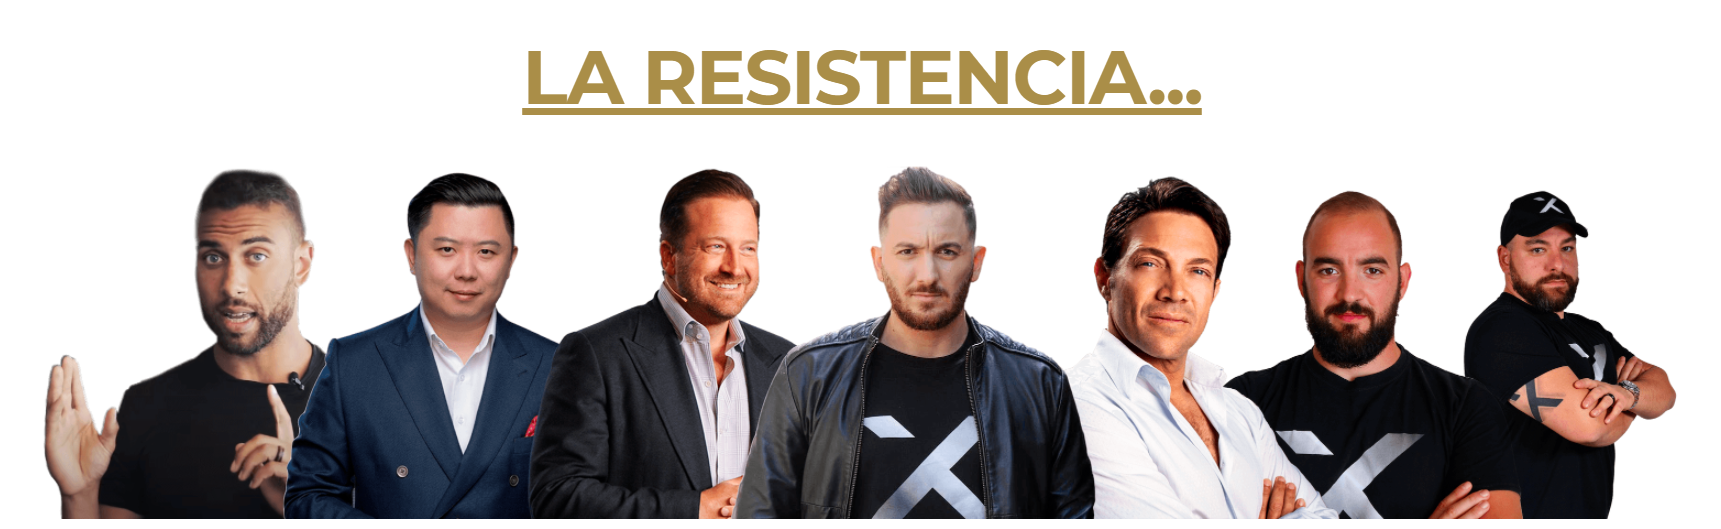 digital marketing la resistencia